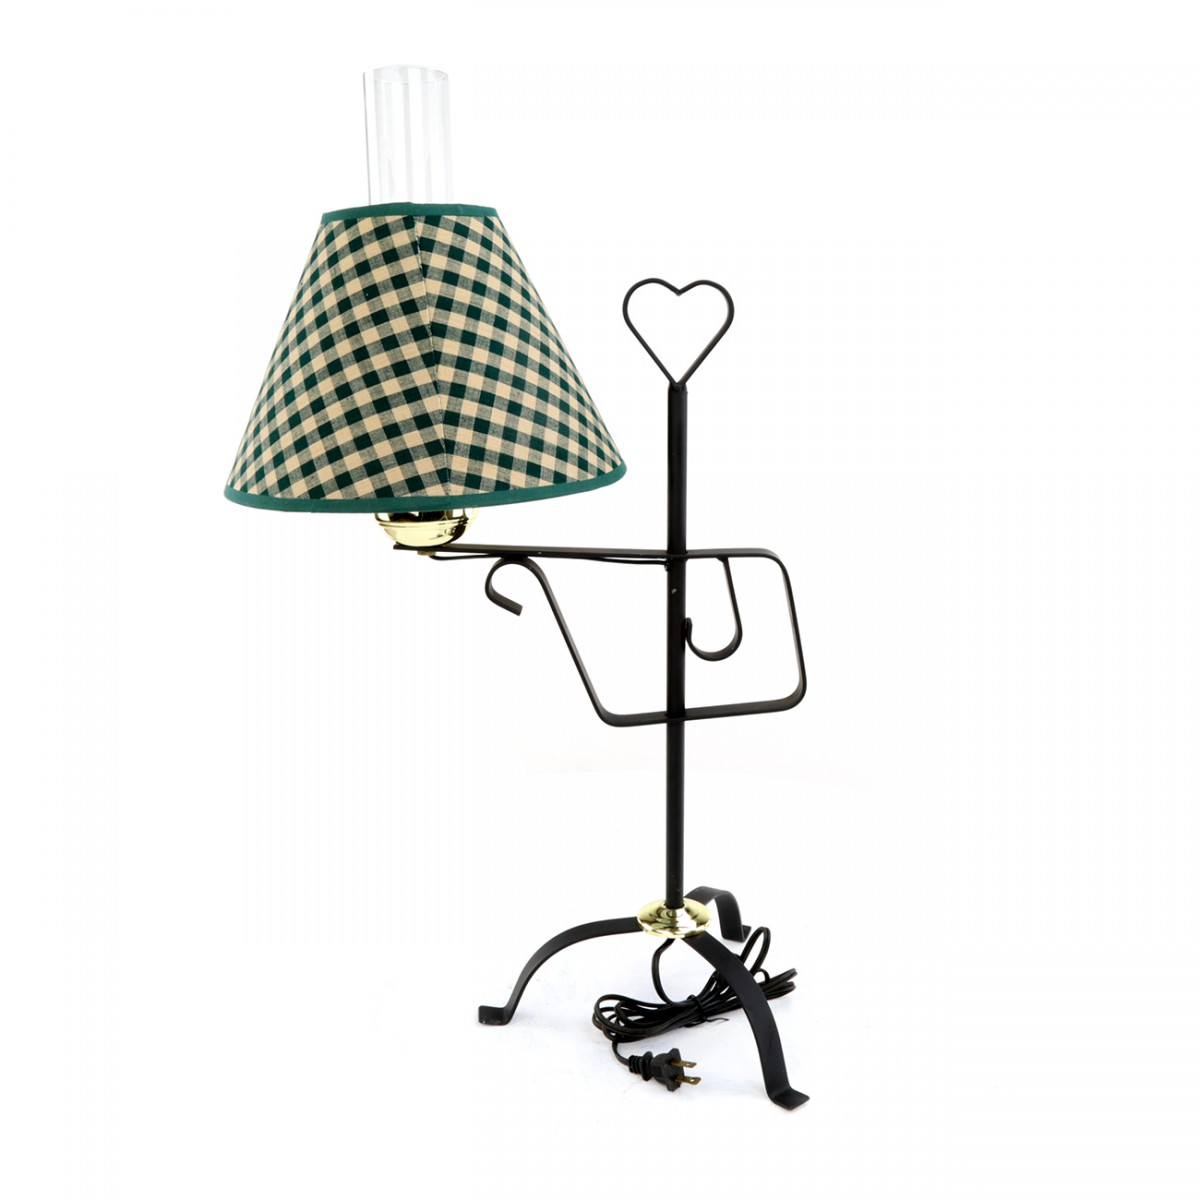 Table Lamp Black Wrought Iron Table Lamp Green Shade 24 5 H